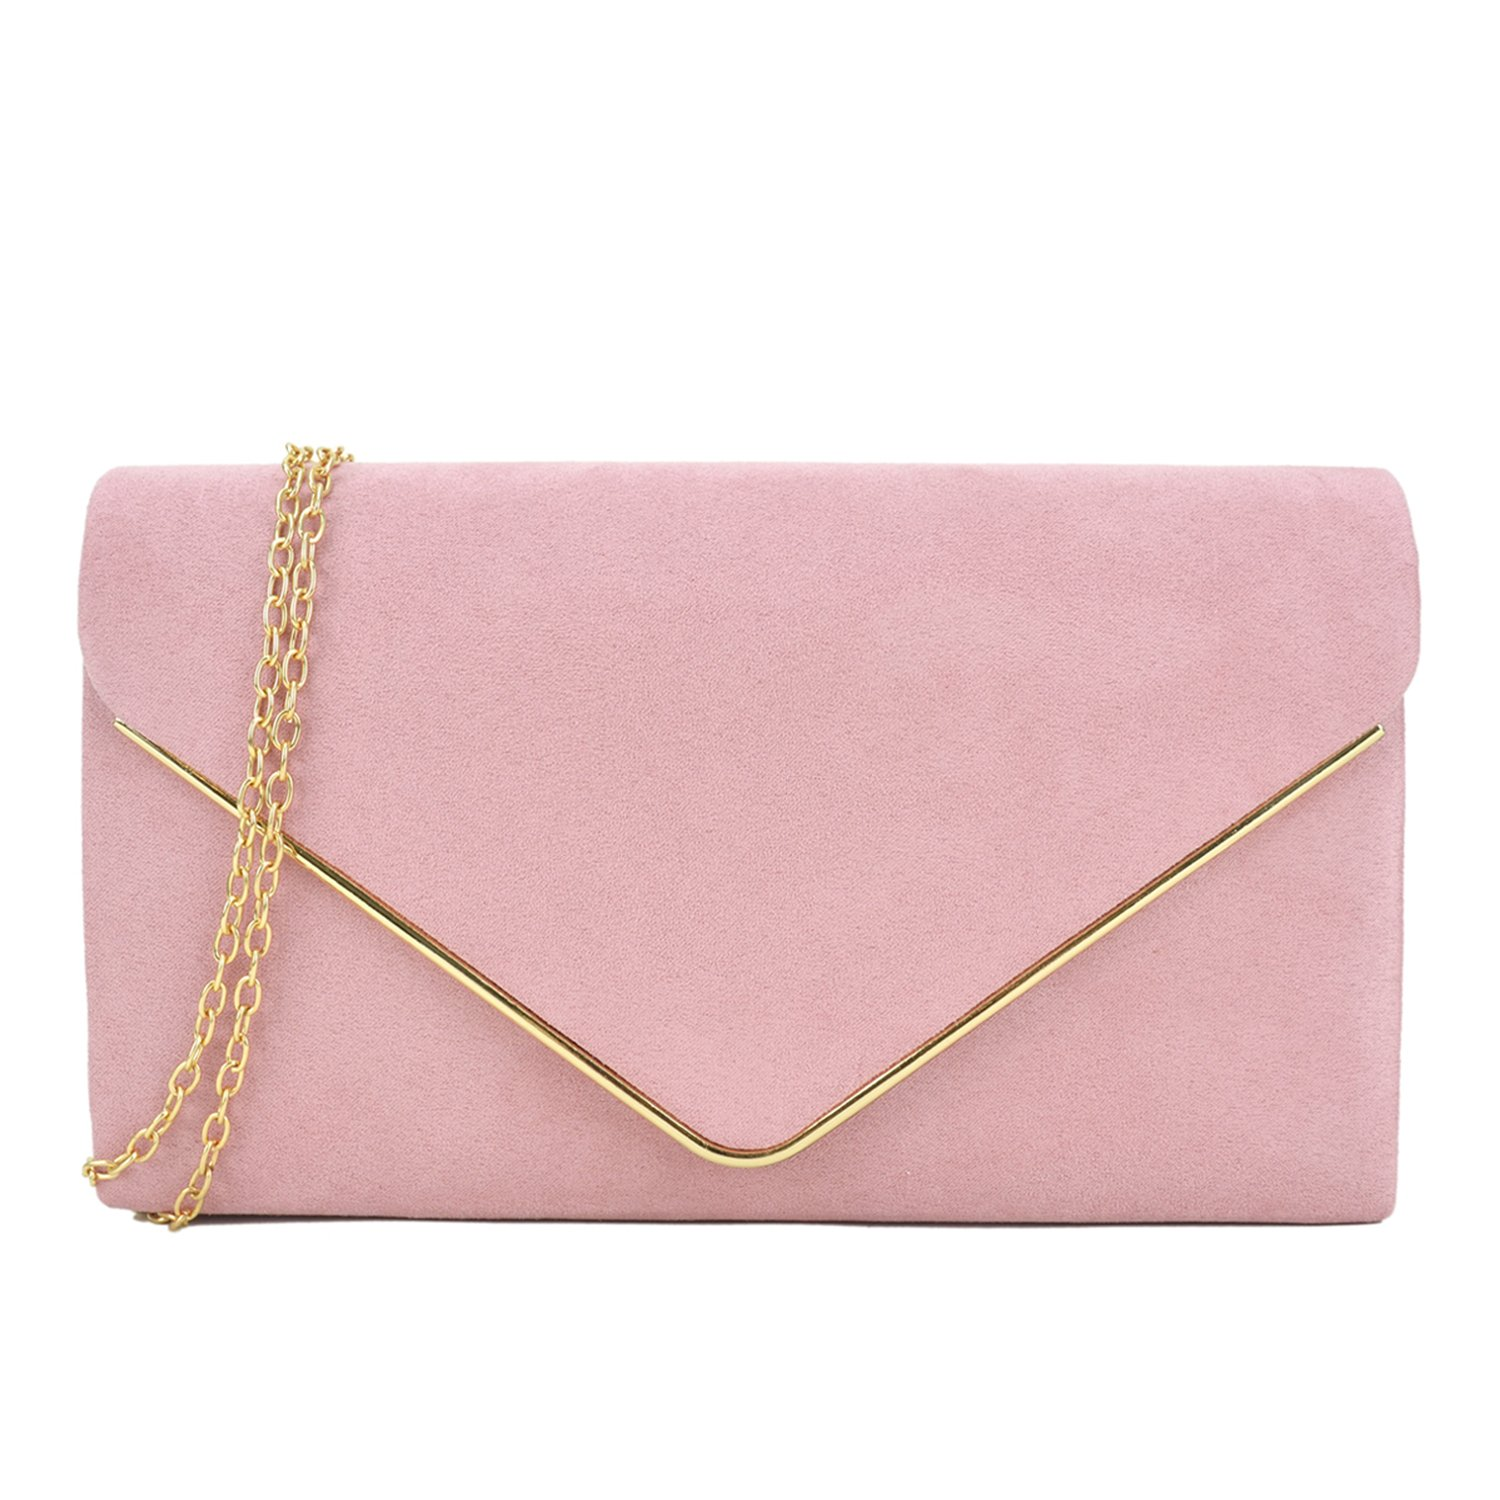 Dasein Women's Evening Clutch Bags Formal Party Clutches Wedding Purses Cocktail Prom Clutches KC-EHD-ZR16222-BK